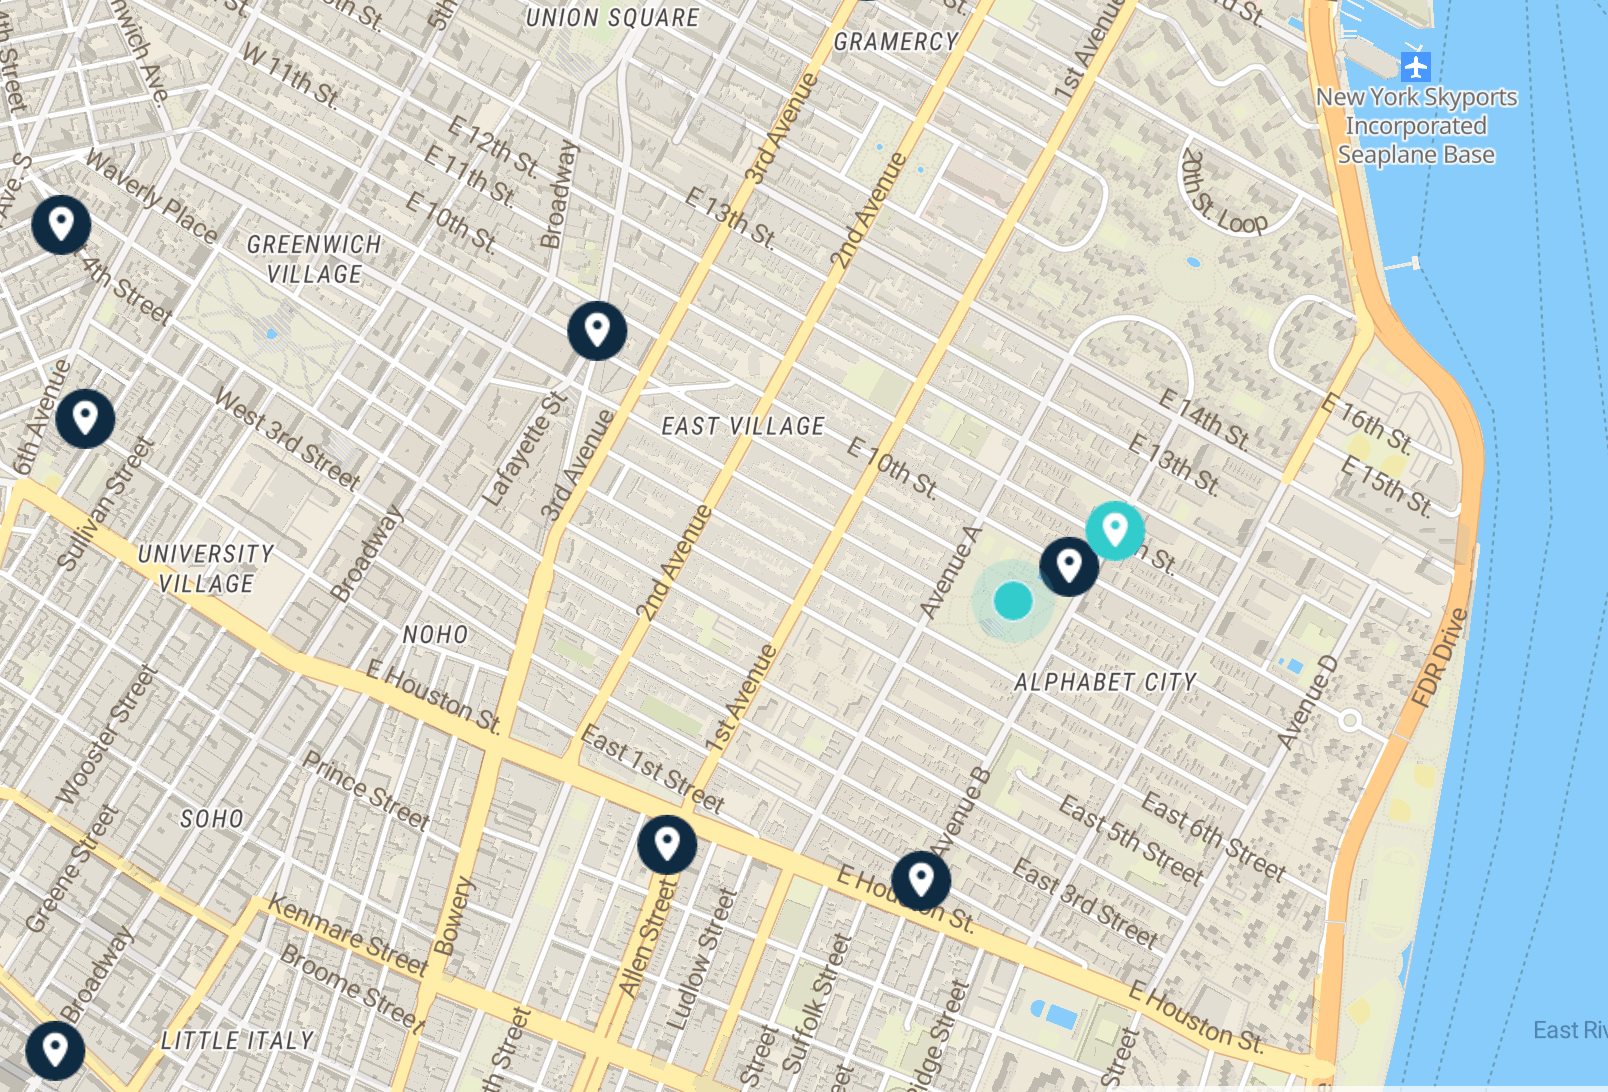 Luggage storage east village nyc map